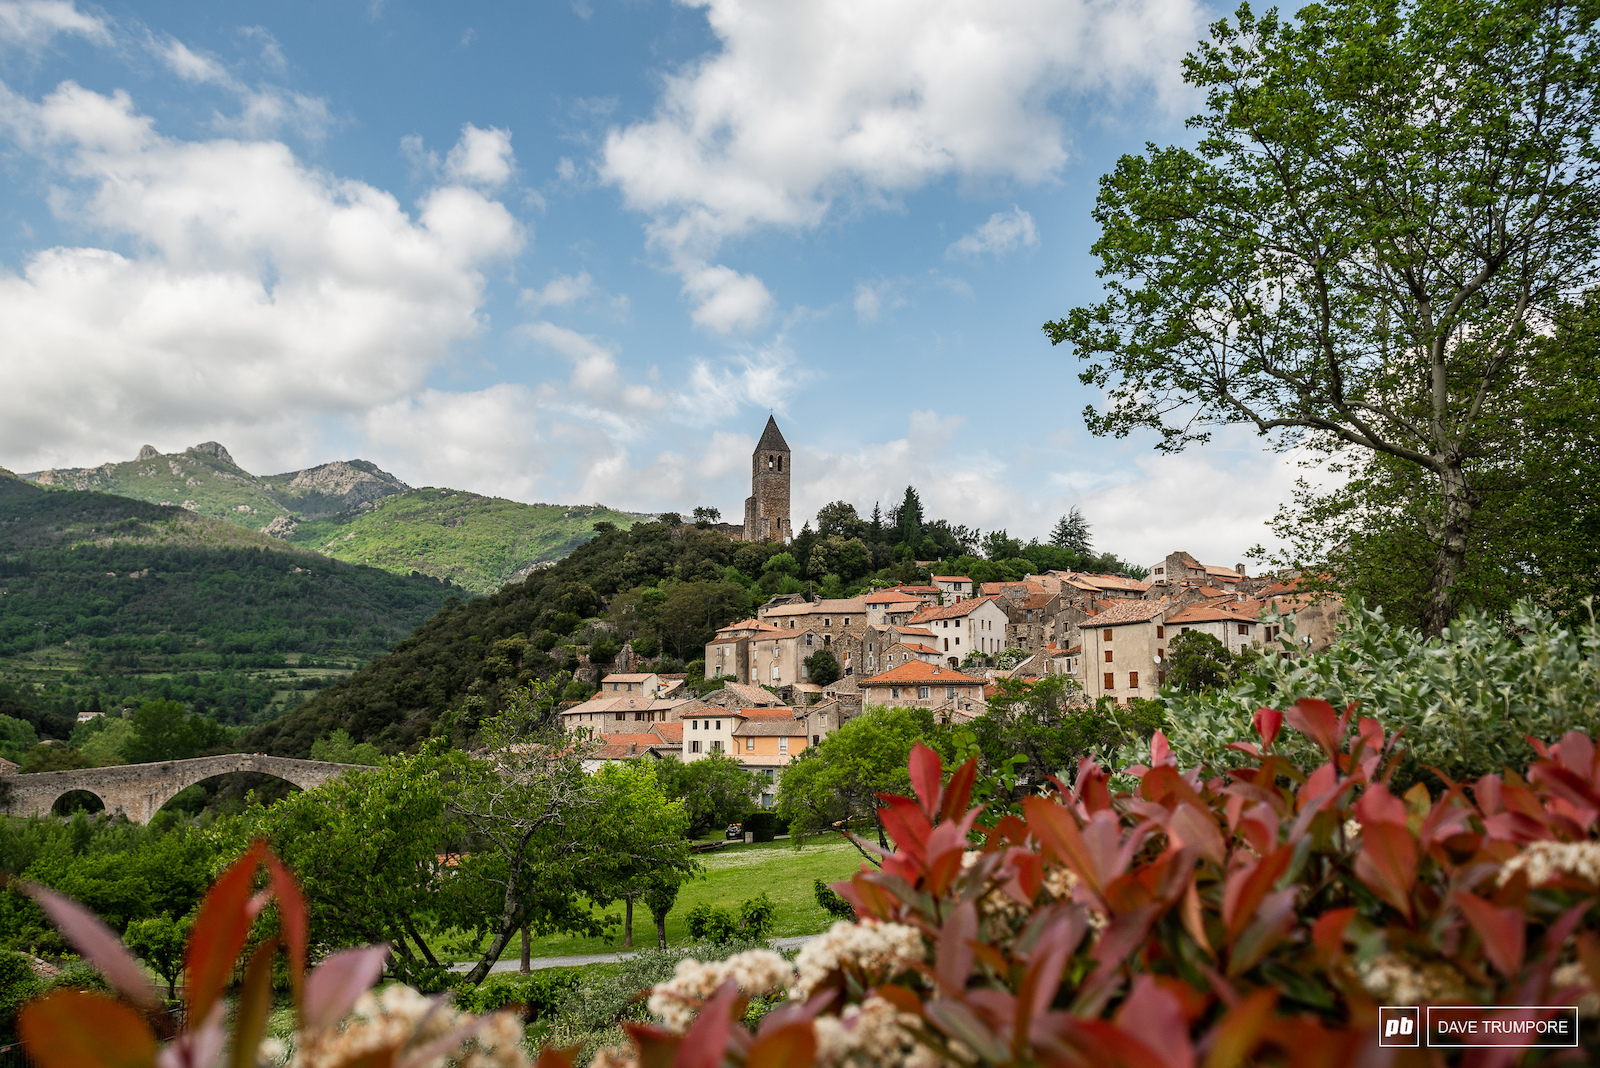 The French village of Olargues which will play host to the 3rd round of the 2018 Enduro World Series.